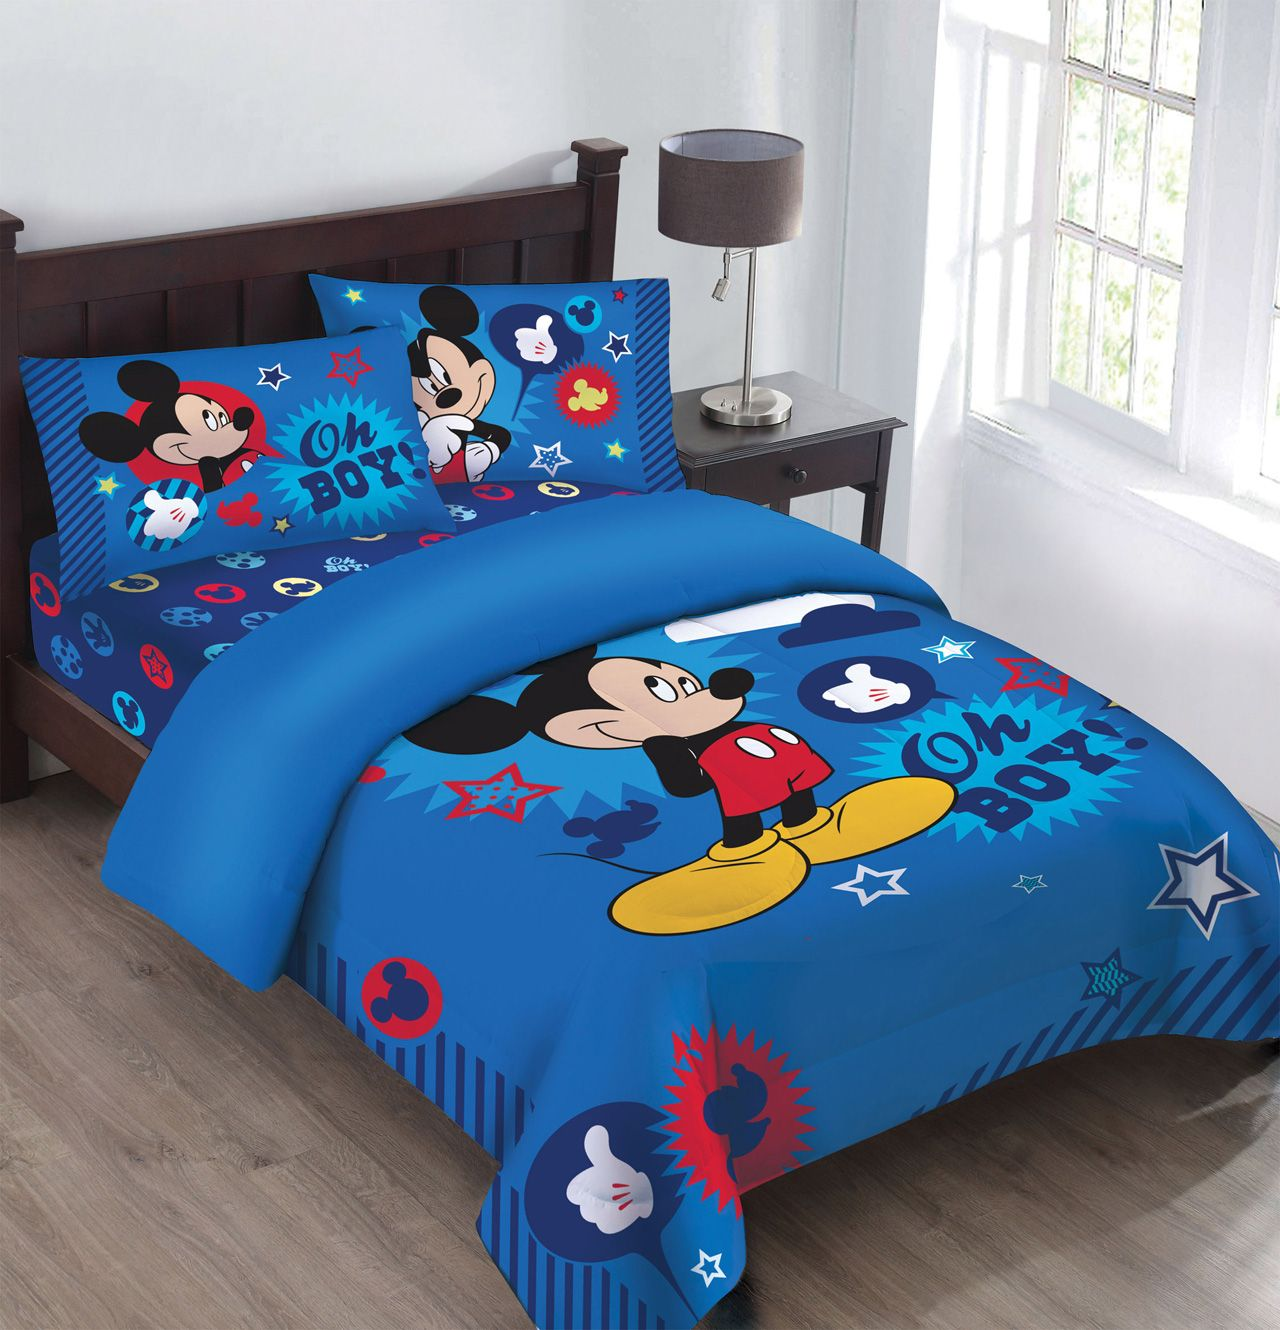 Kidsu0027 Comforter Sets   Disney Mickey Mouse Oh Boy Clubhouse Super Soft  Luxury 4 Piece Full Size Reversible Comforter *** Click Image For More  Details.